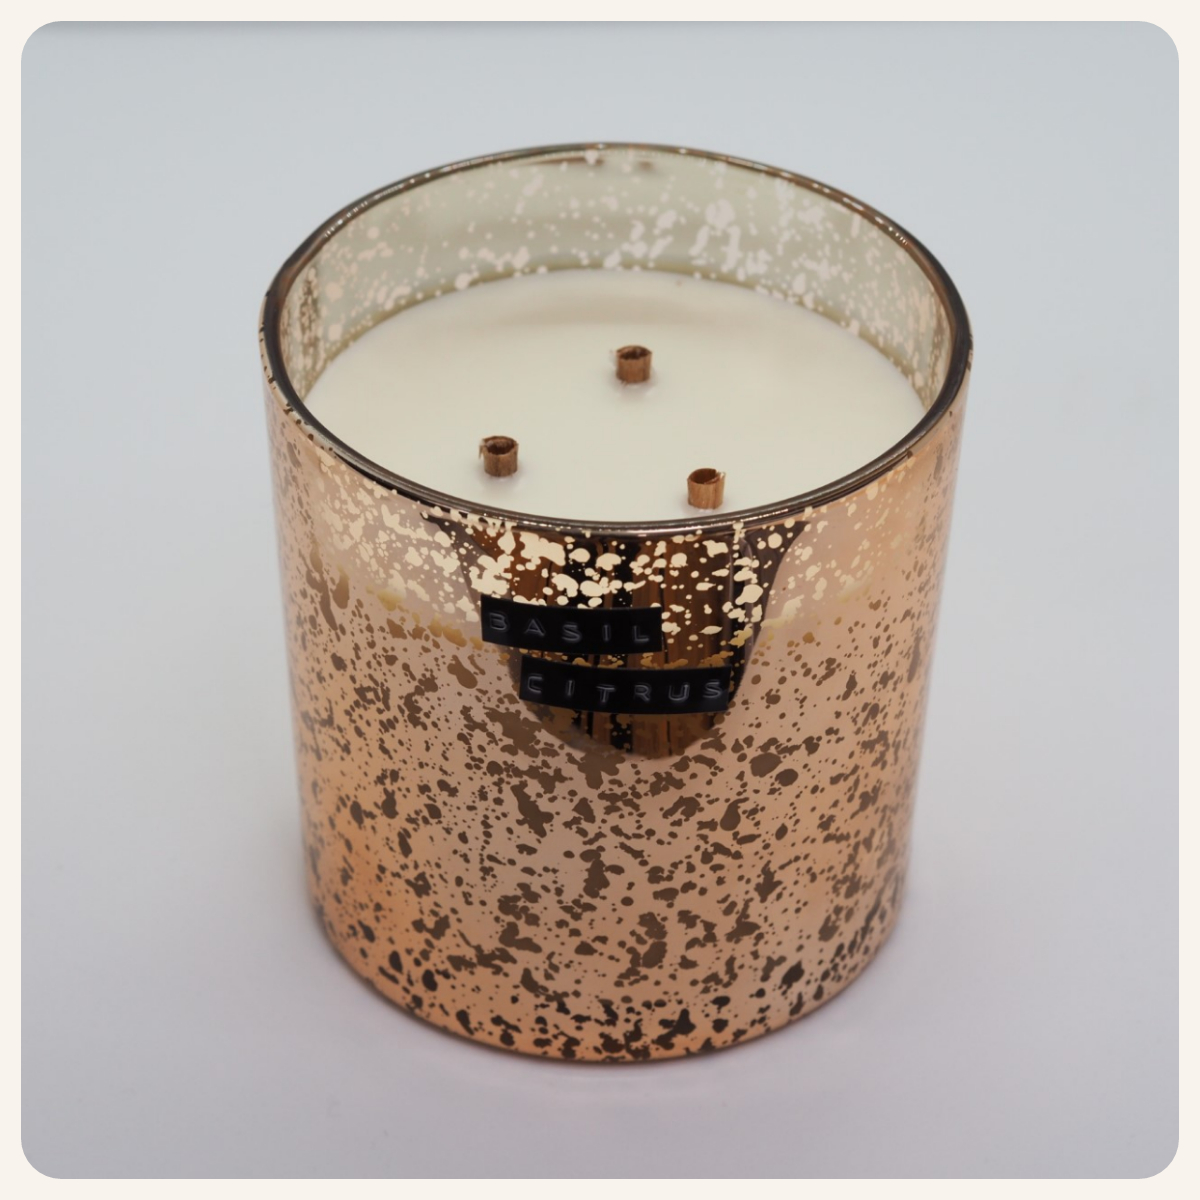 Basil Citrus Copper Coffee Table Candle.